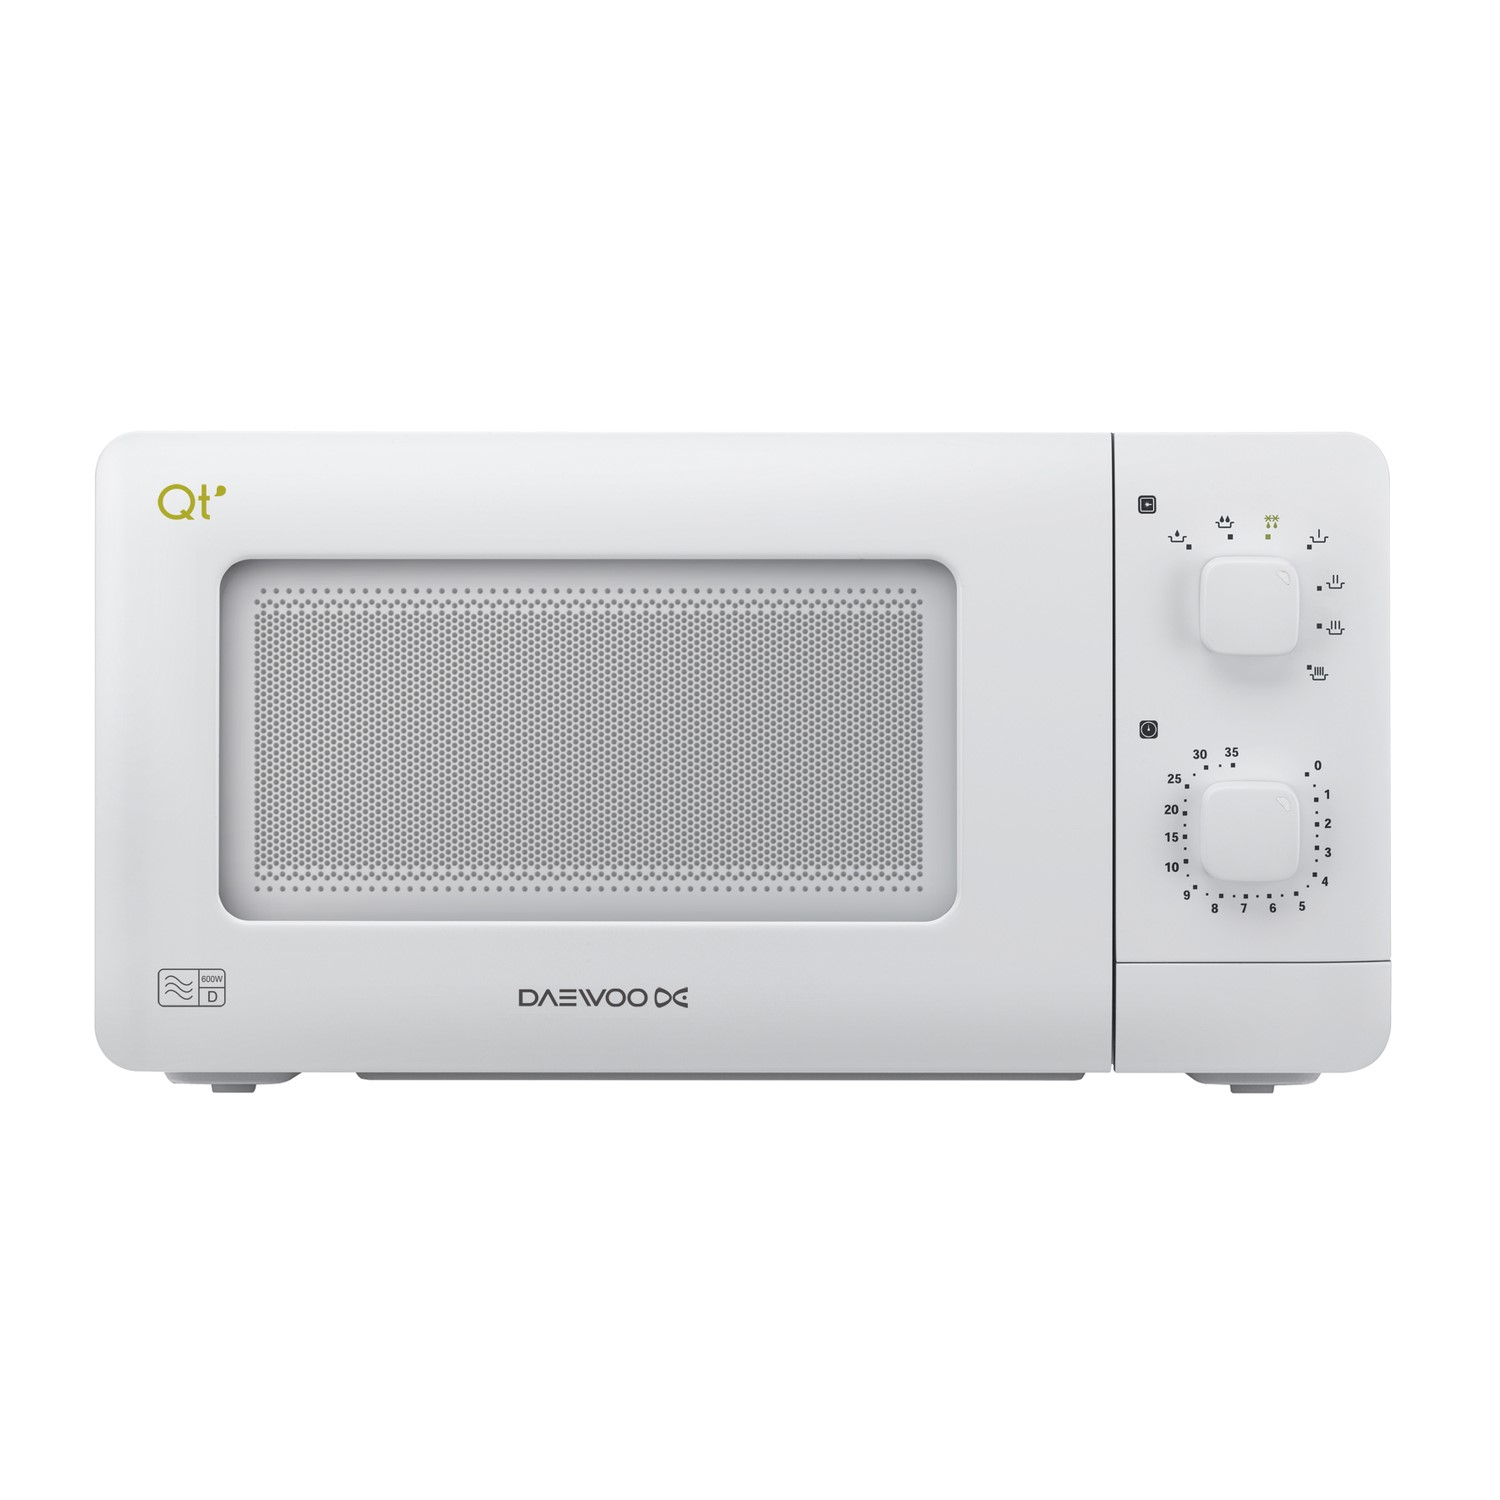 daewoo qt1 14l 600w manual control microwave white great for caravans and motorhomes rh appliancesdirect co uk Daewoo Wm1010cc Manual Daewoo Wm1010cc Manual